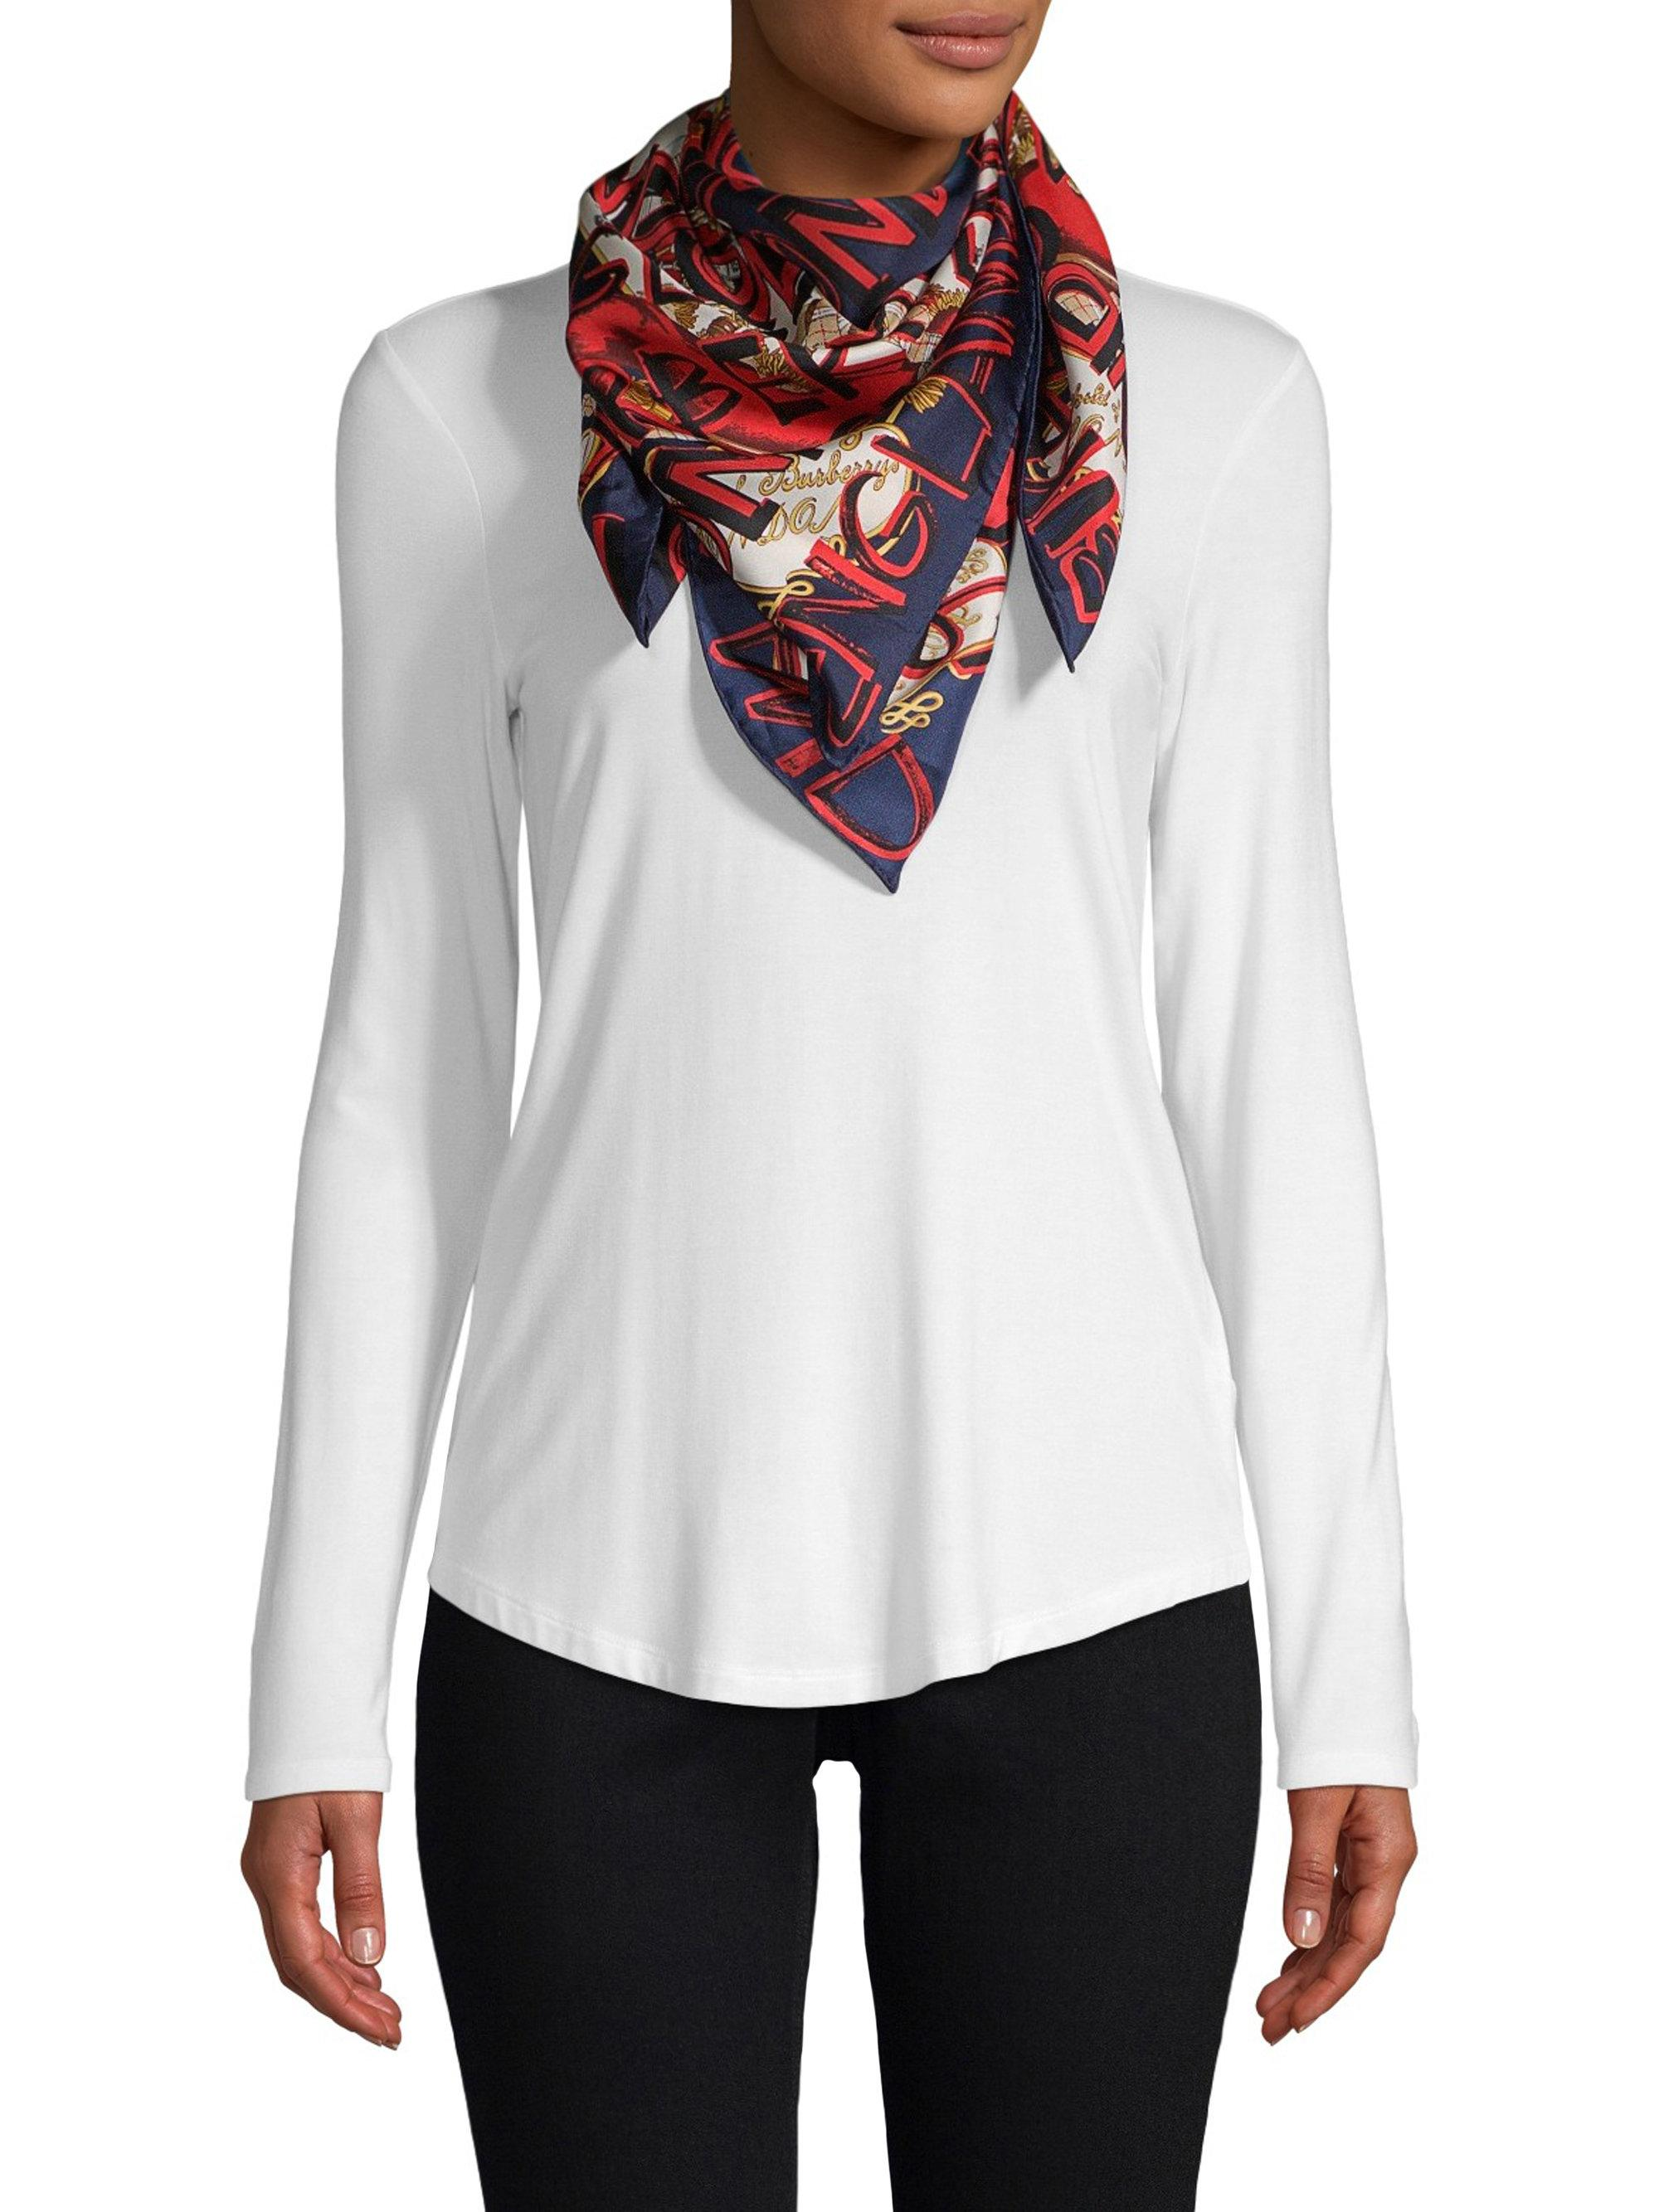 Very Cheap Sale Online Clearance Find Great Archive Print scarf - Blue Burberry RVGCH3